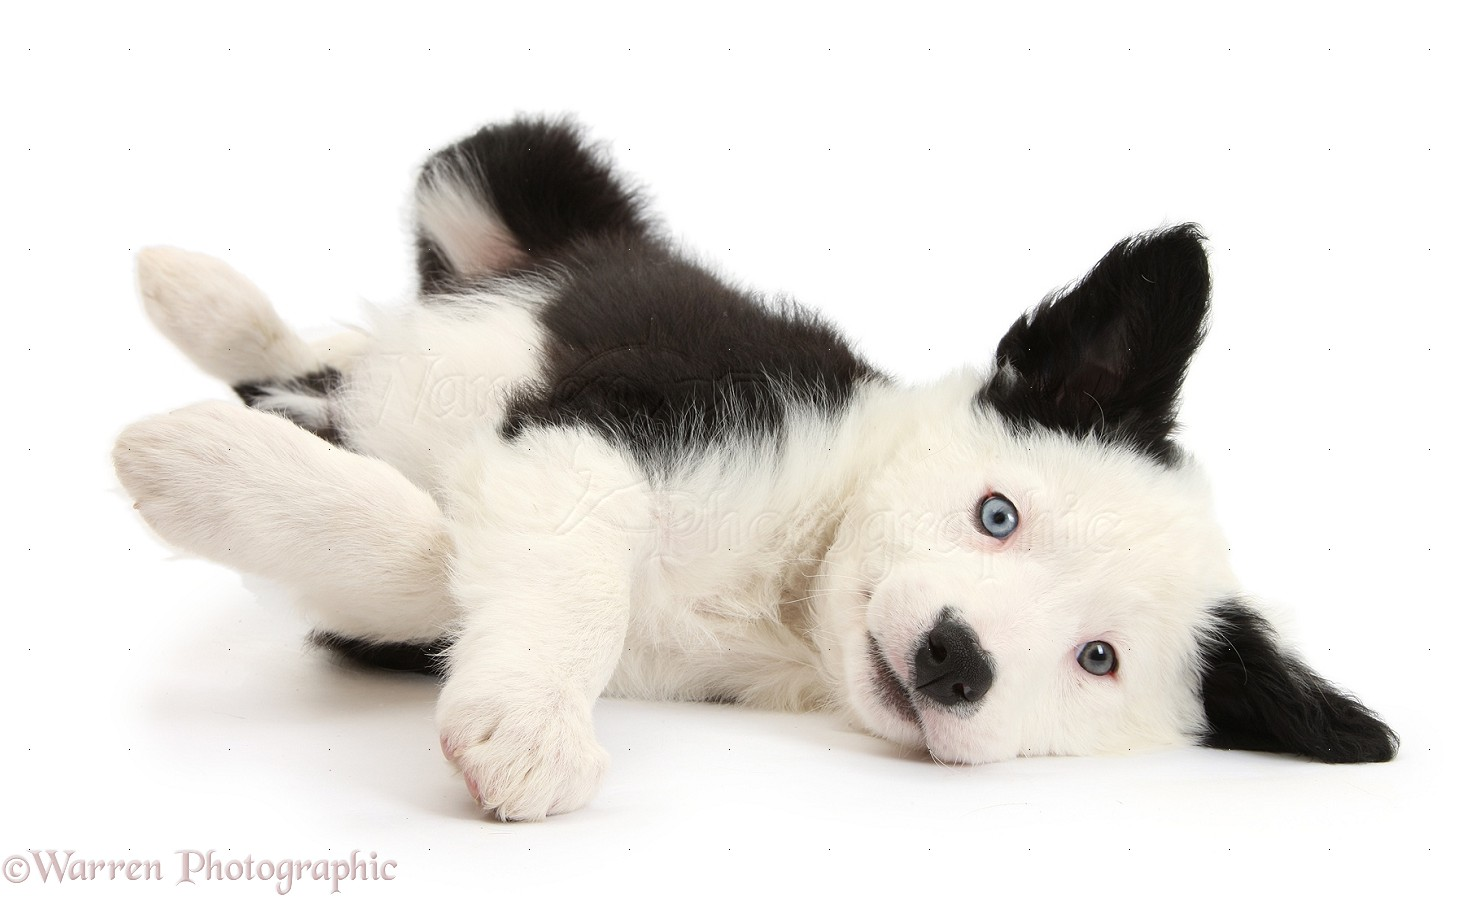 dog black and white border collie puppy lying on his side photo wp35164